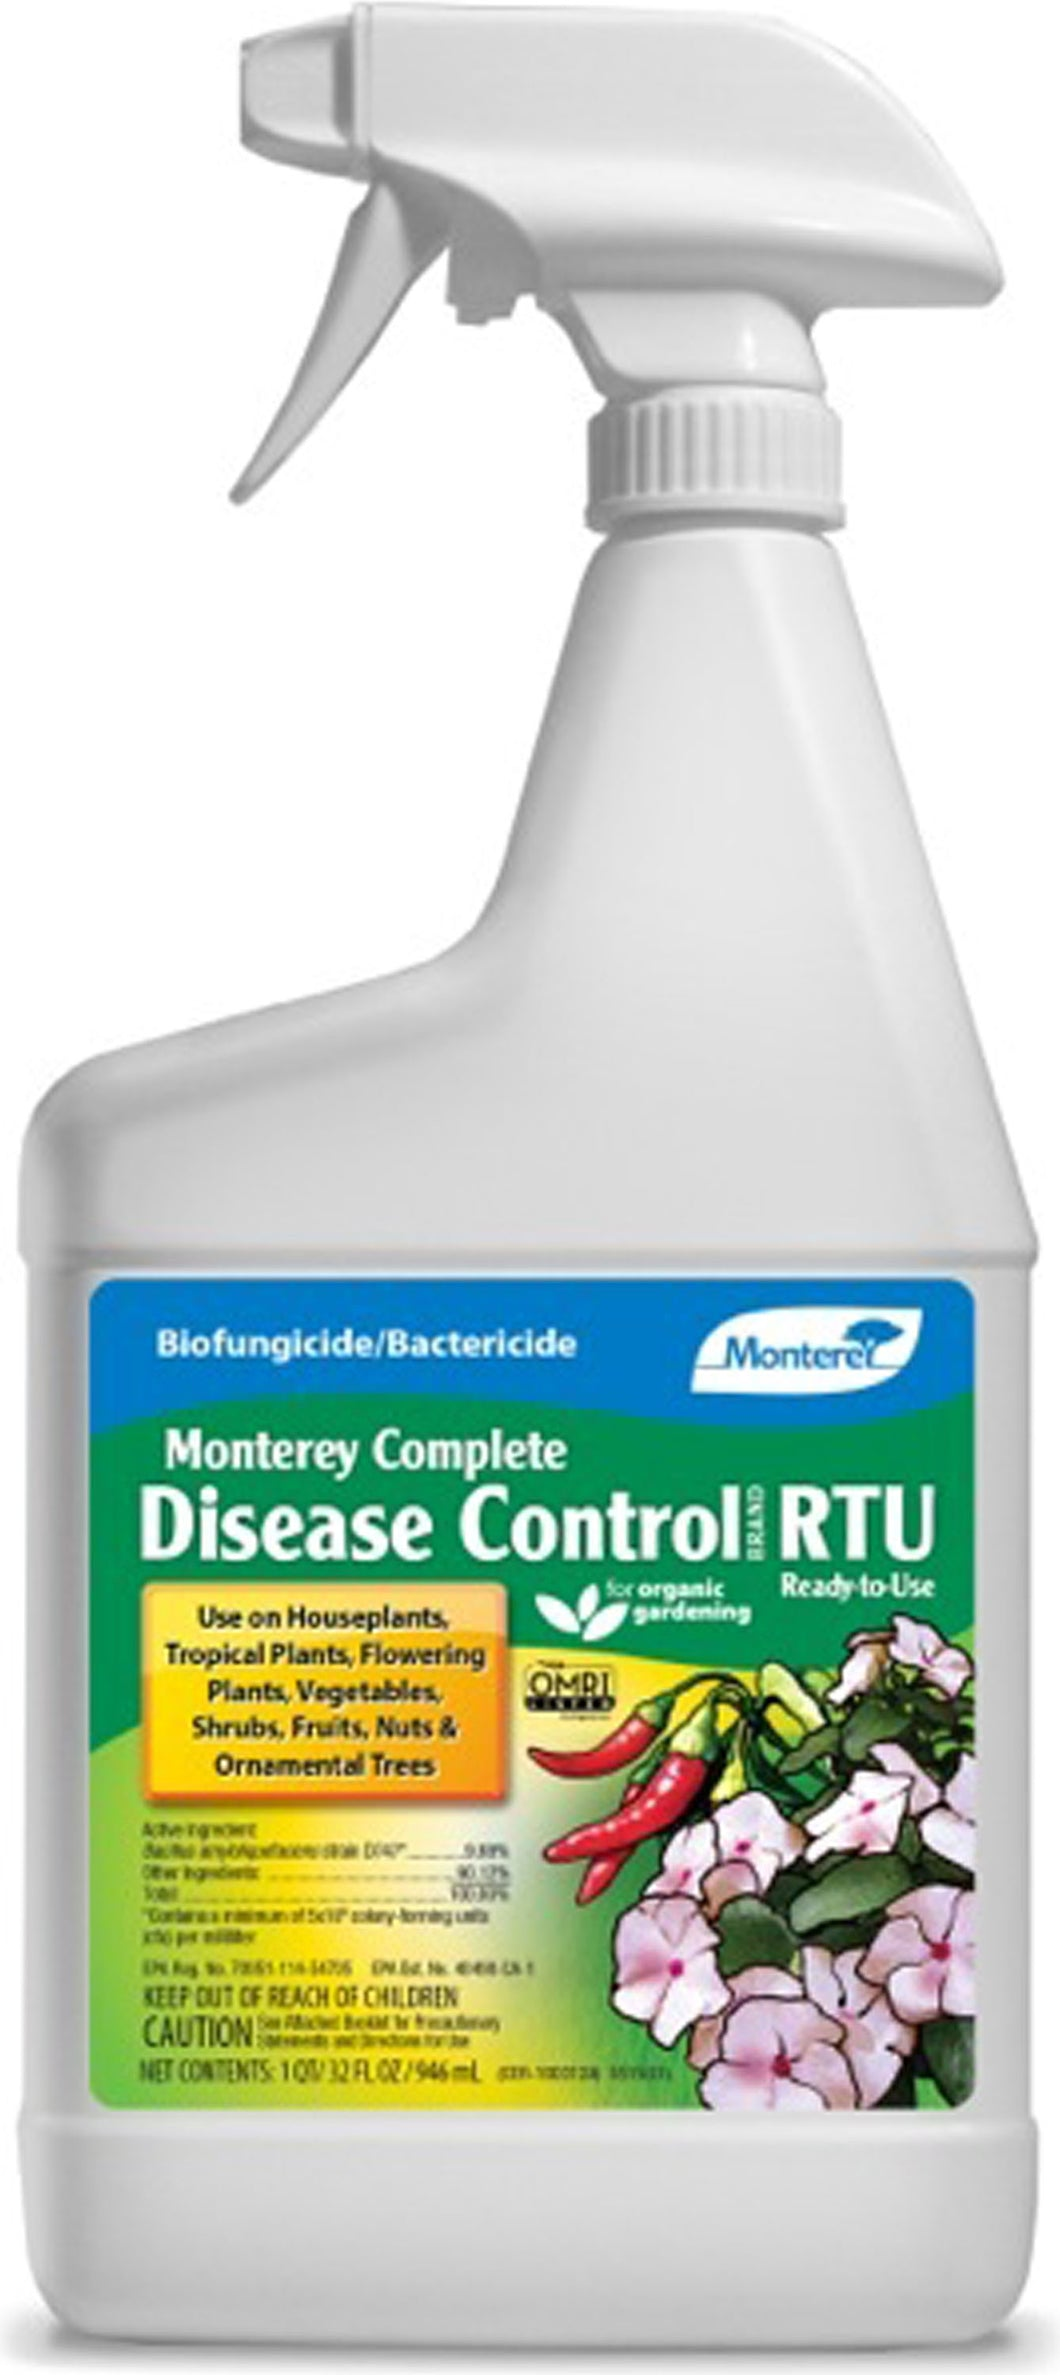 Complete Disease Control Ready To Use